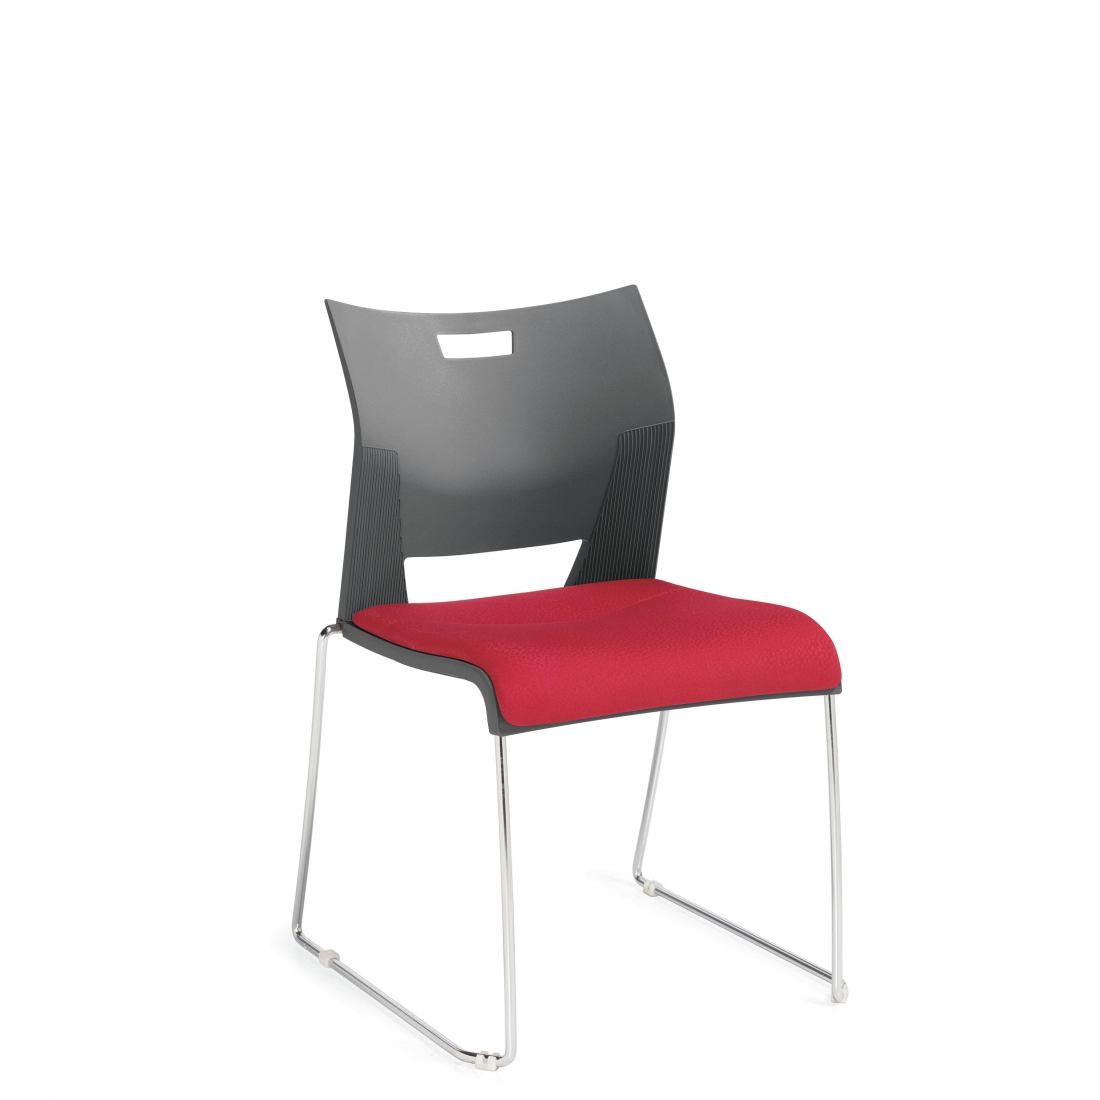 Duet side chair with padded seat